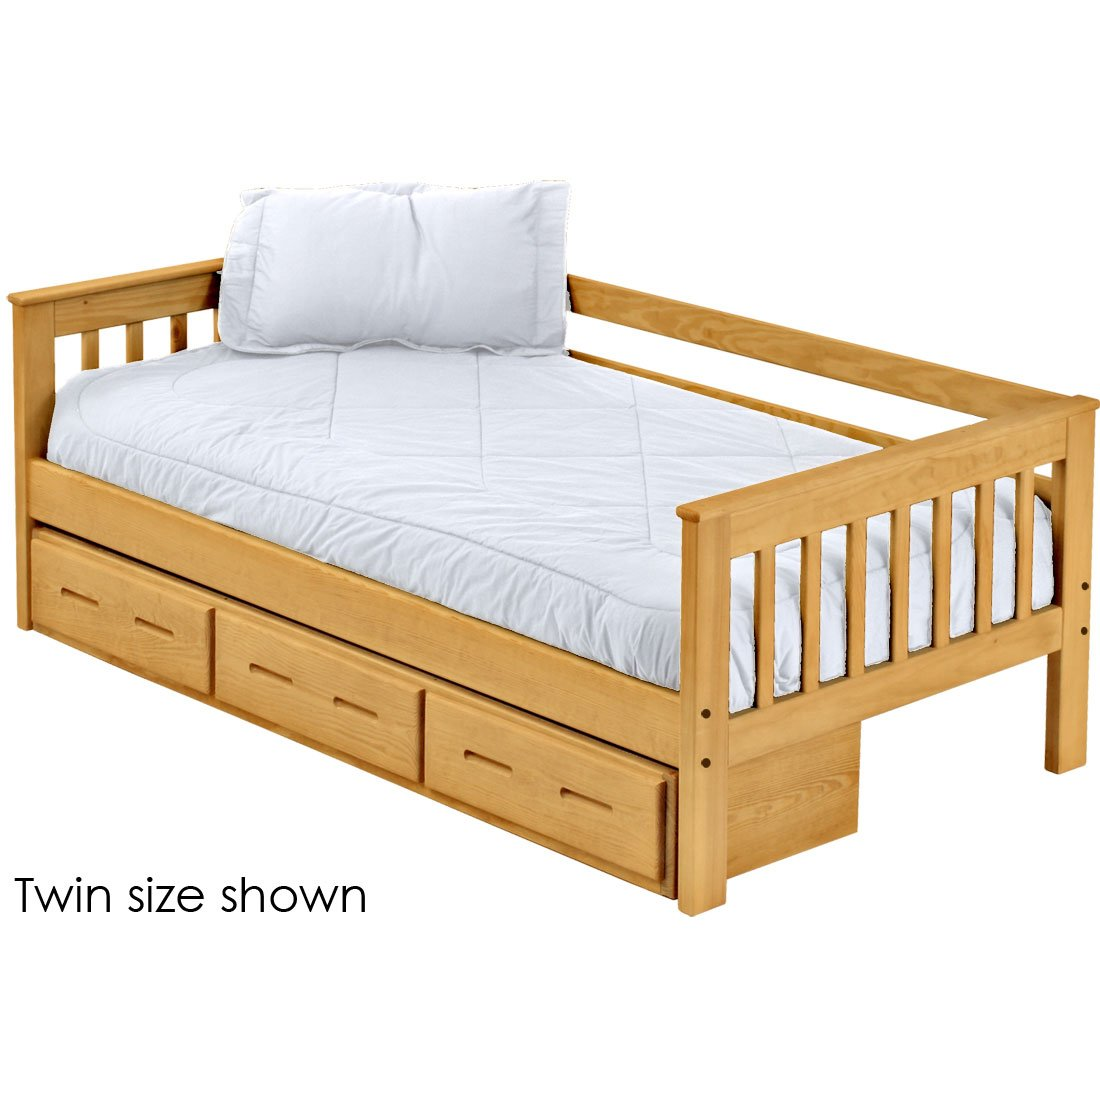 new arrivals 2ae64 10bc5 Mission day bed with drawers. 29in high. Twin size.